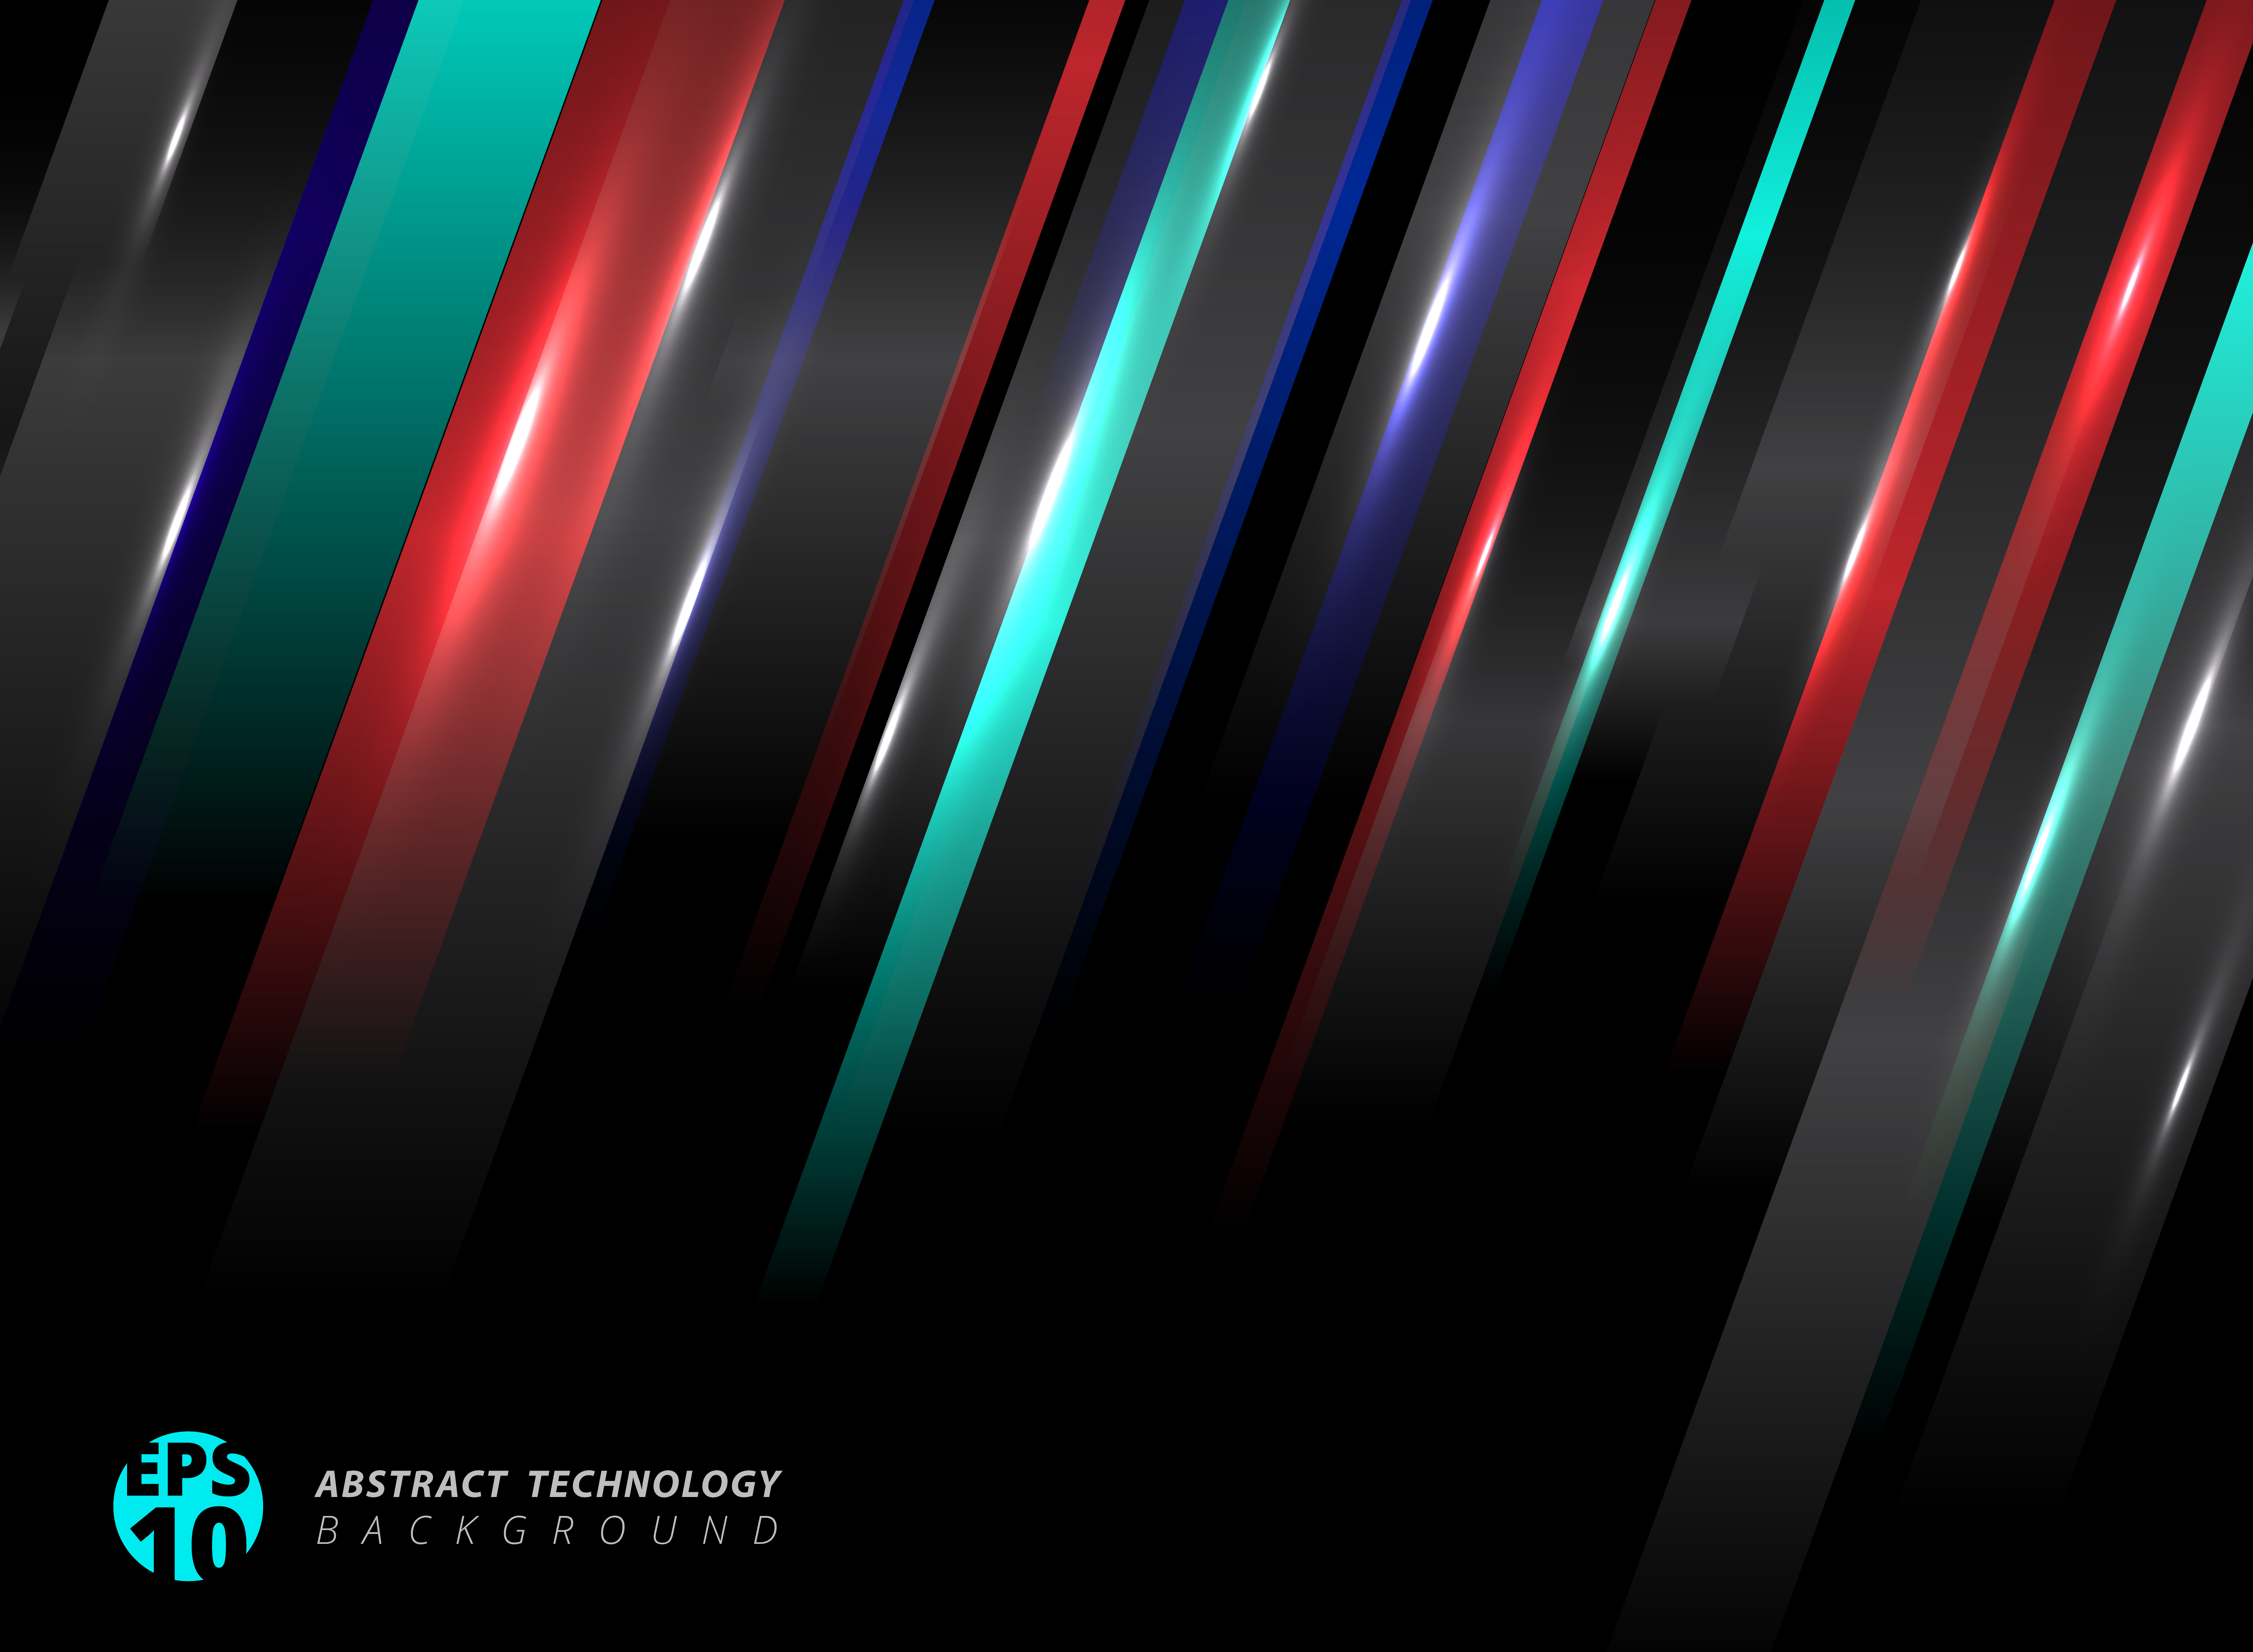 Abstract Technology Background With Light Effect: Abstract Technology Striped Oblique Blue, Red Color Lines